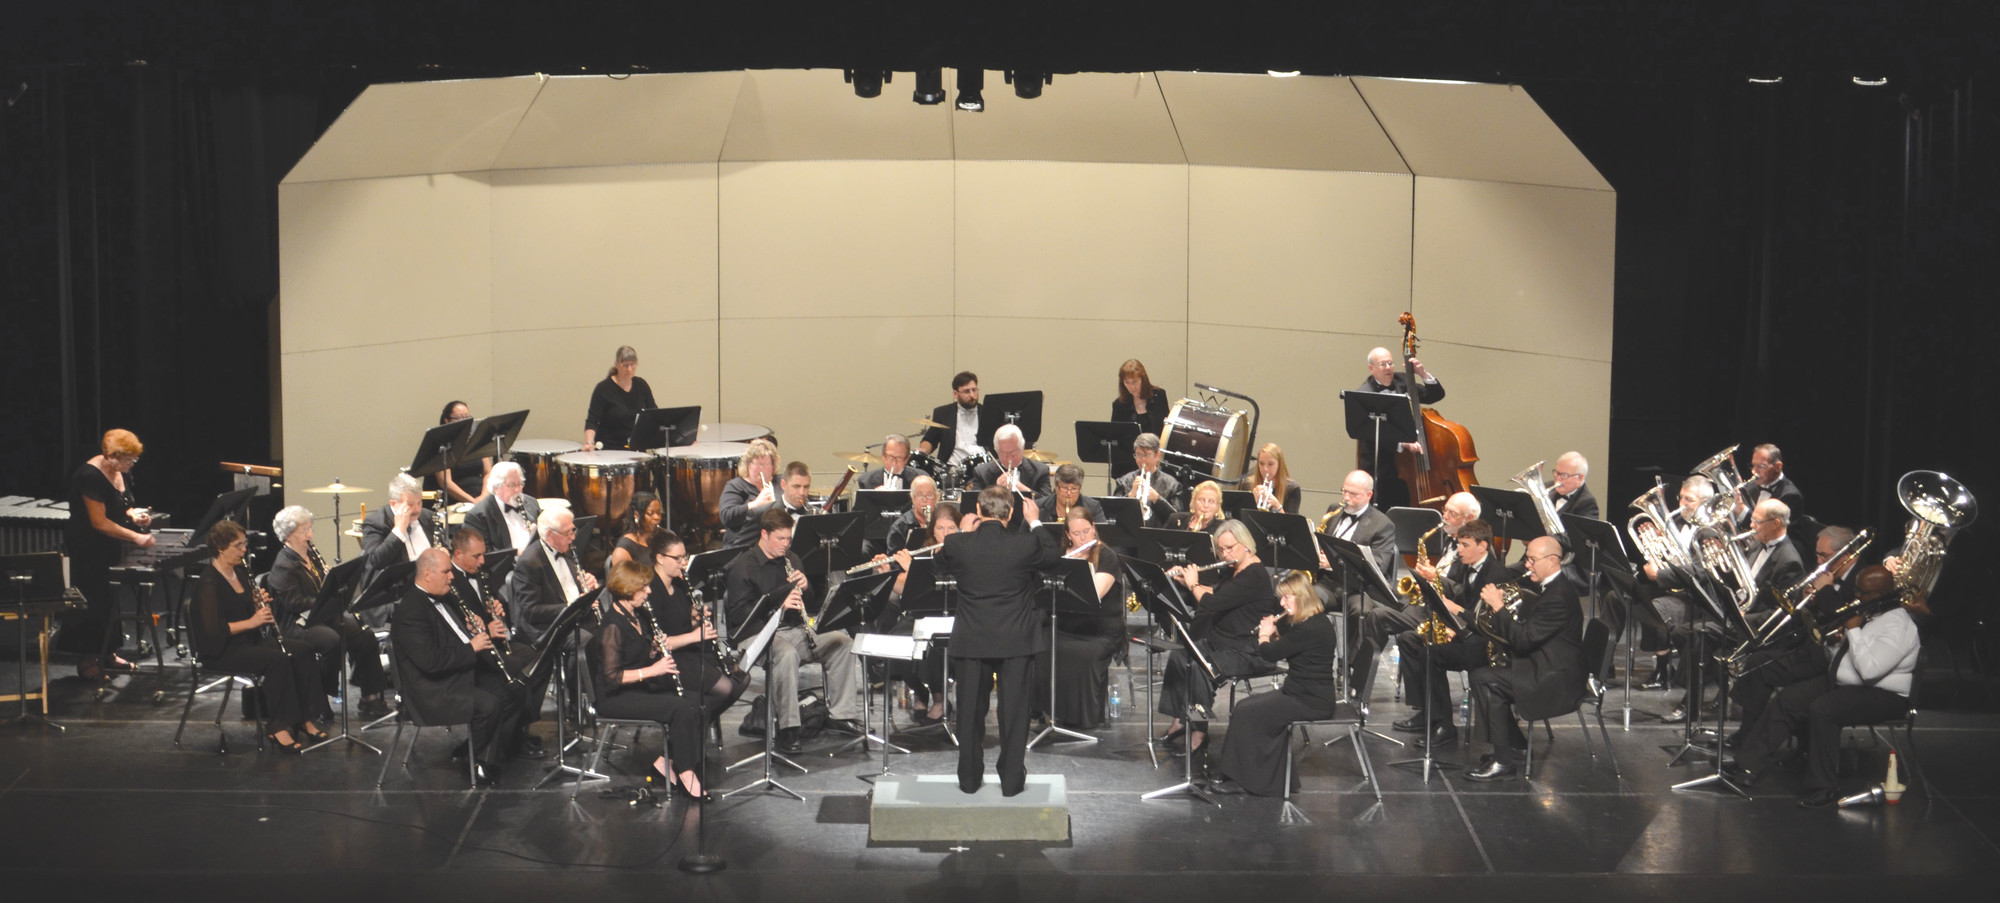 PHOTO PROVIDEDThe Sumter Community Concert Band, directed by James H. Mills, will begin rehearsals for its 2018-19 season at 7 p.m. Thursday in the band room at Patriot Hall, 135 Haynsworth St. Those interested in joining the band, who should have previous band experience and be able to read music, need only come to a rehearsal. No audition is required. The SCCB rehearses each Thursday at 7 p.m.